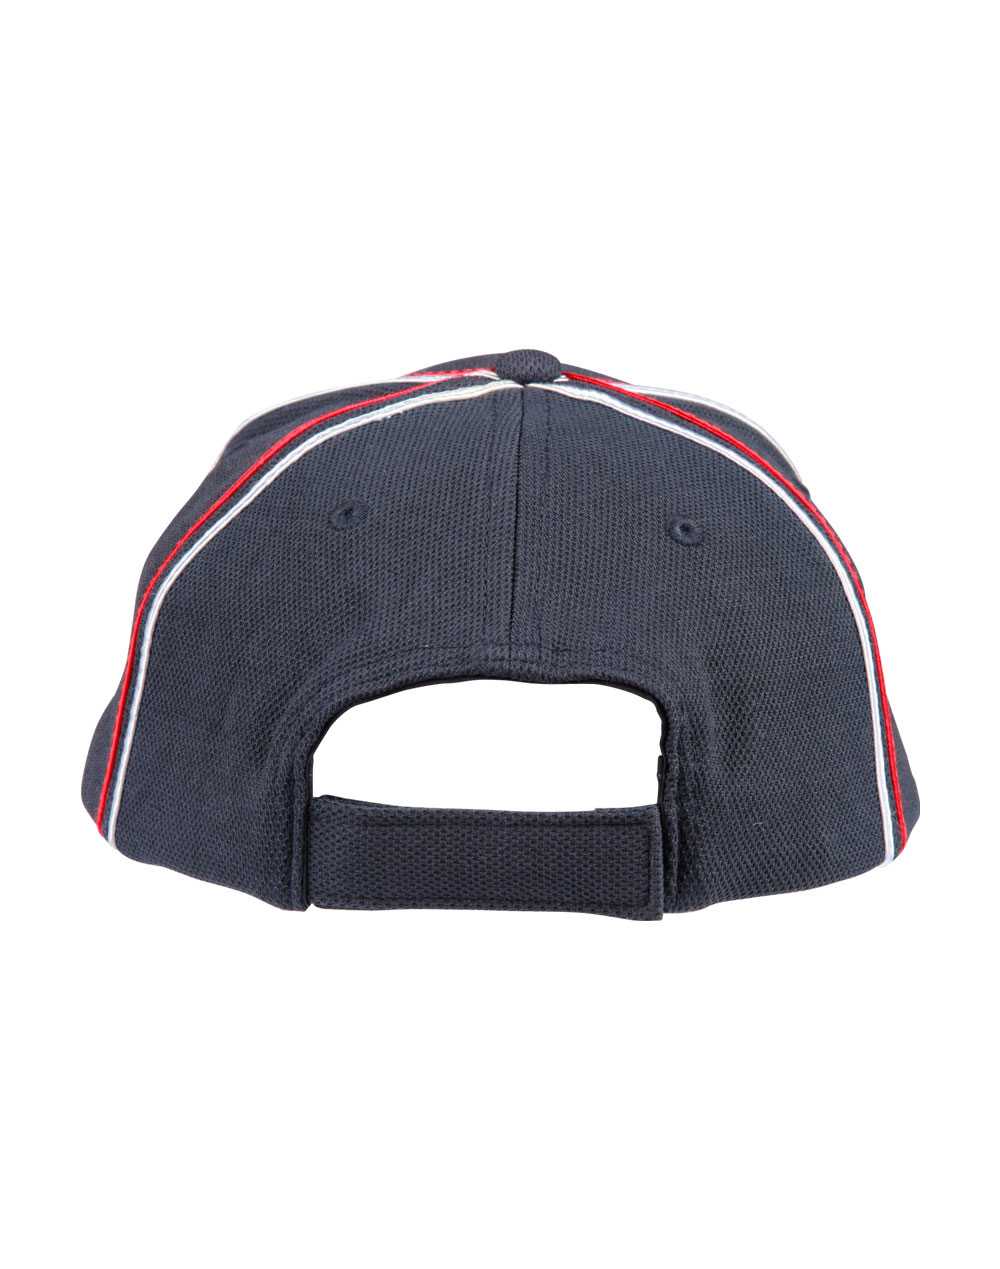 https://s3-ap-southeast-1.amazonaws.com/ws-imgs/CAPS/CH76_Navy.White.Red_Back.jpg